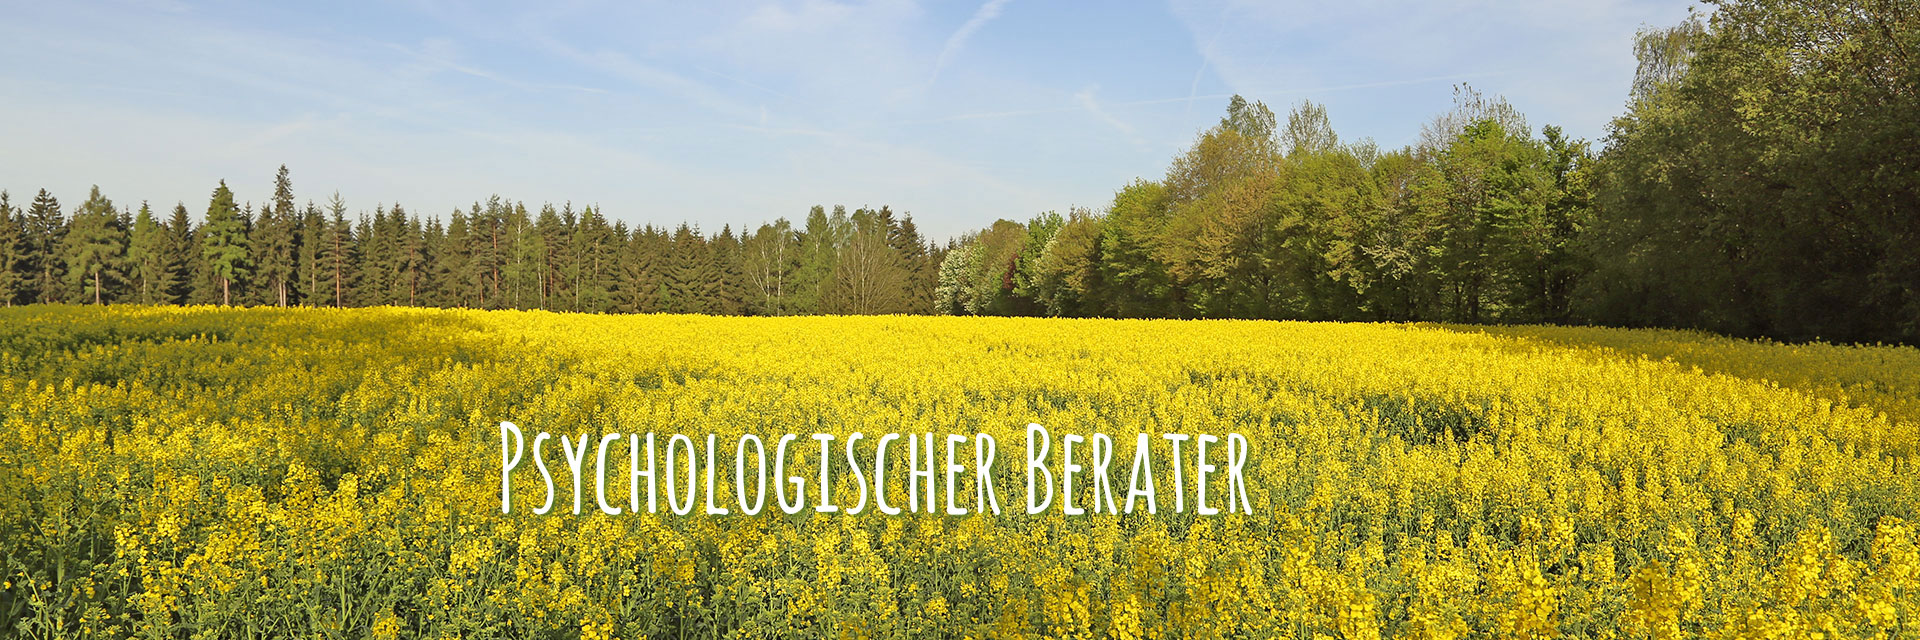 Psychologischer Berater